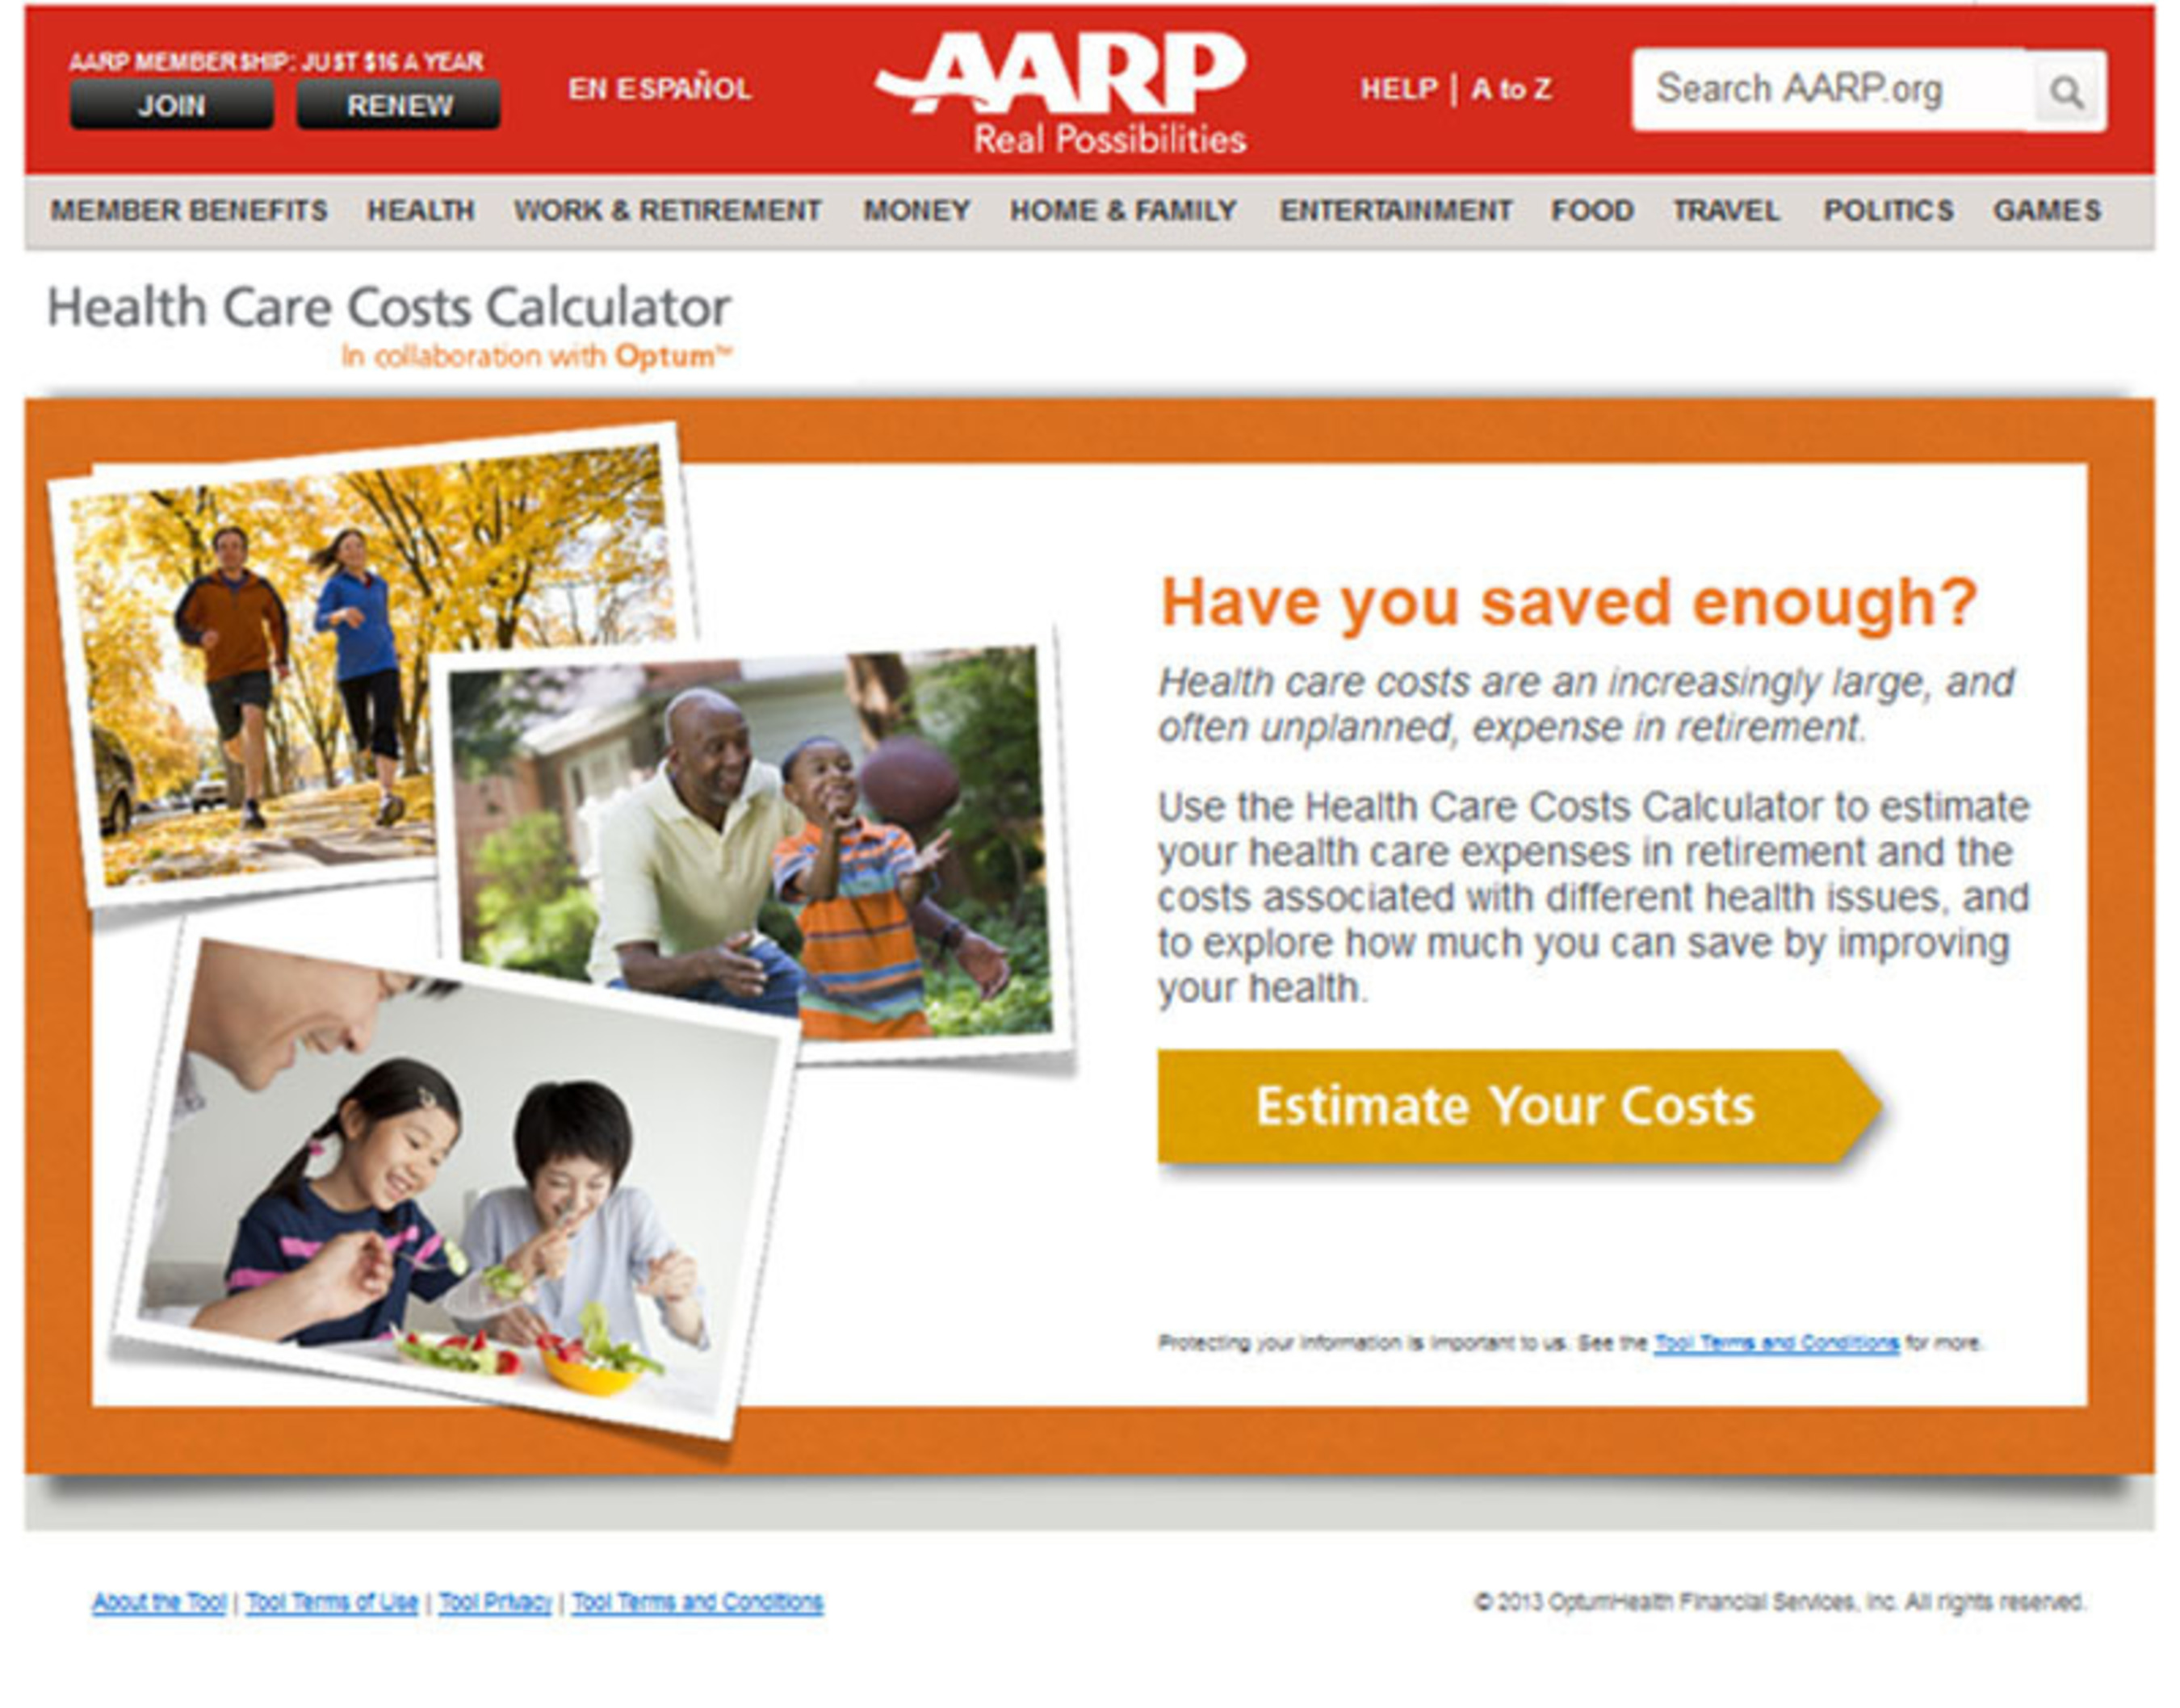 Check out AARP's free Health Care Cost Calculator at: www.aarp.org/healthcostscalc. (PRNewsFoto/AARP)